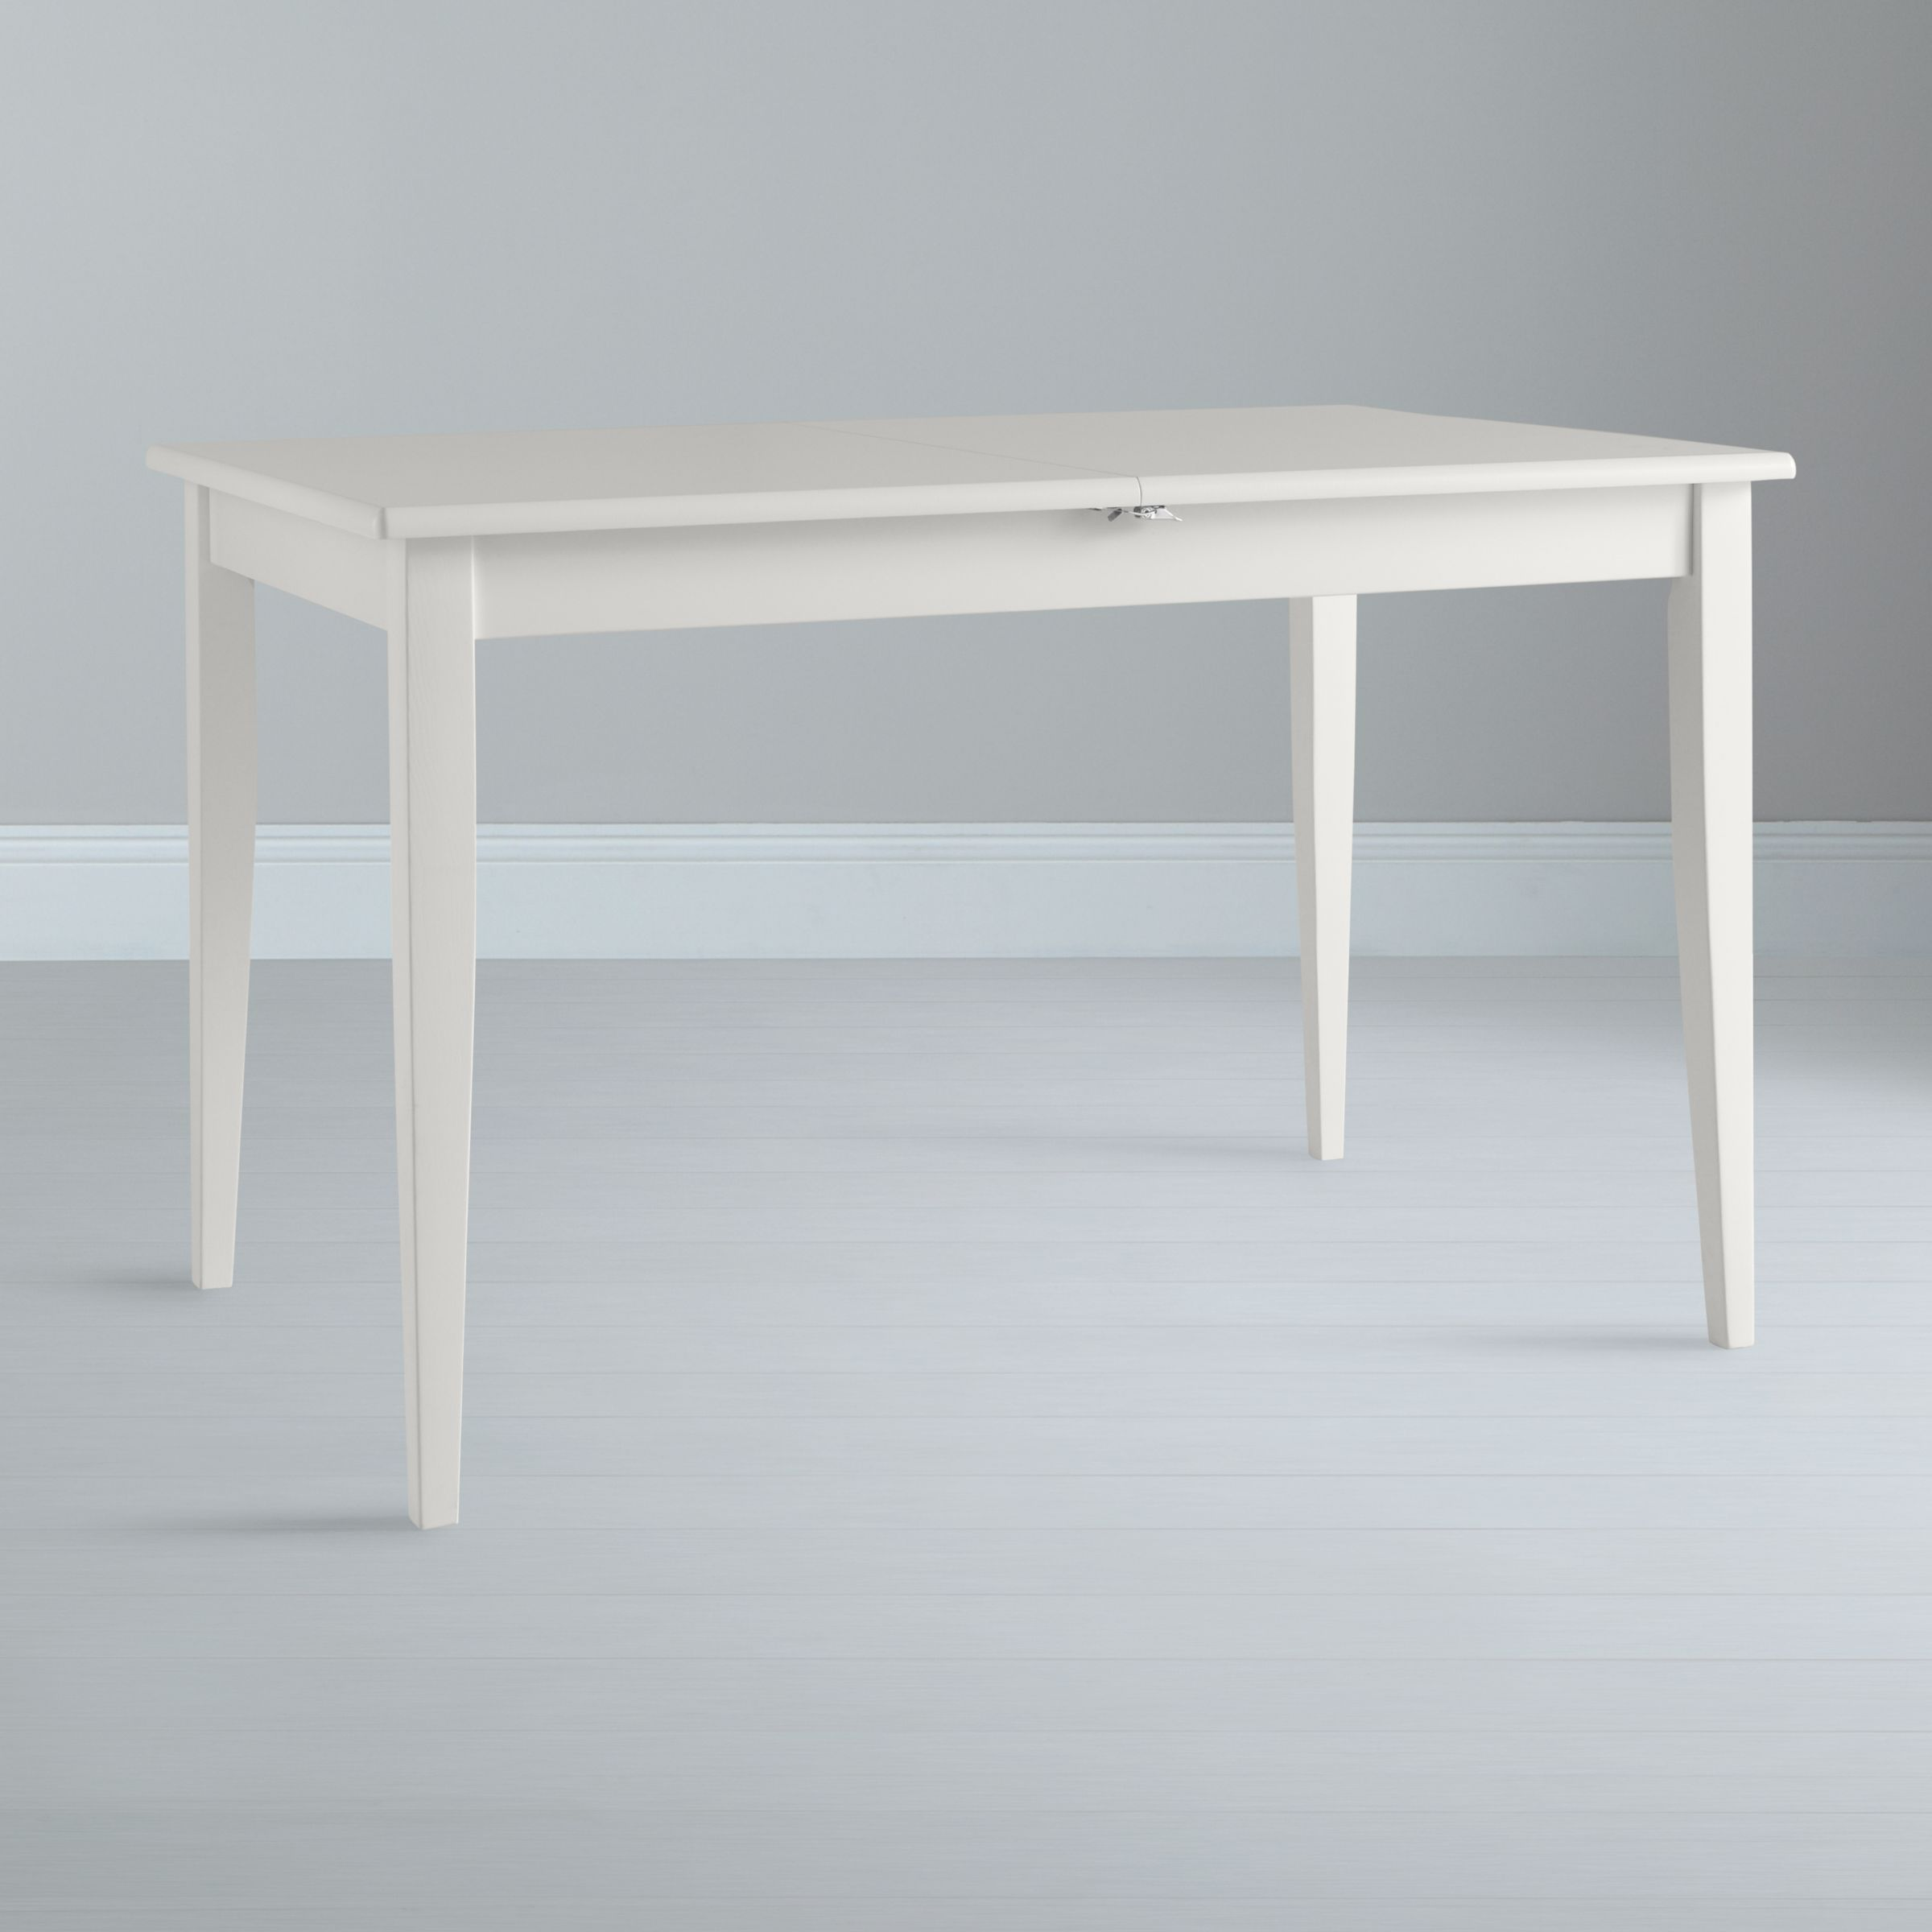 john lewis dining tables : 231130514 from www.comparestoreprices.co.uk size 1600 x 1600 jpeg 145kB